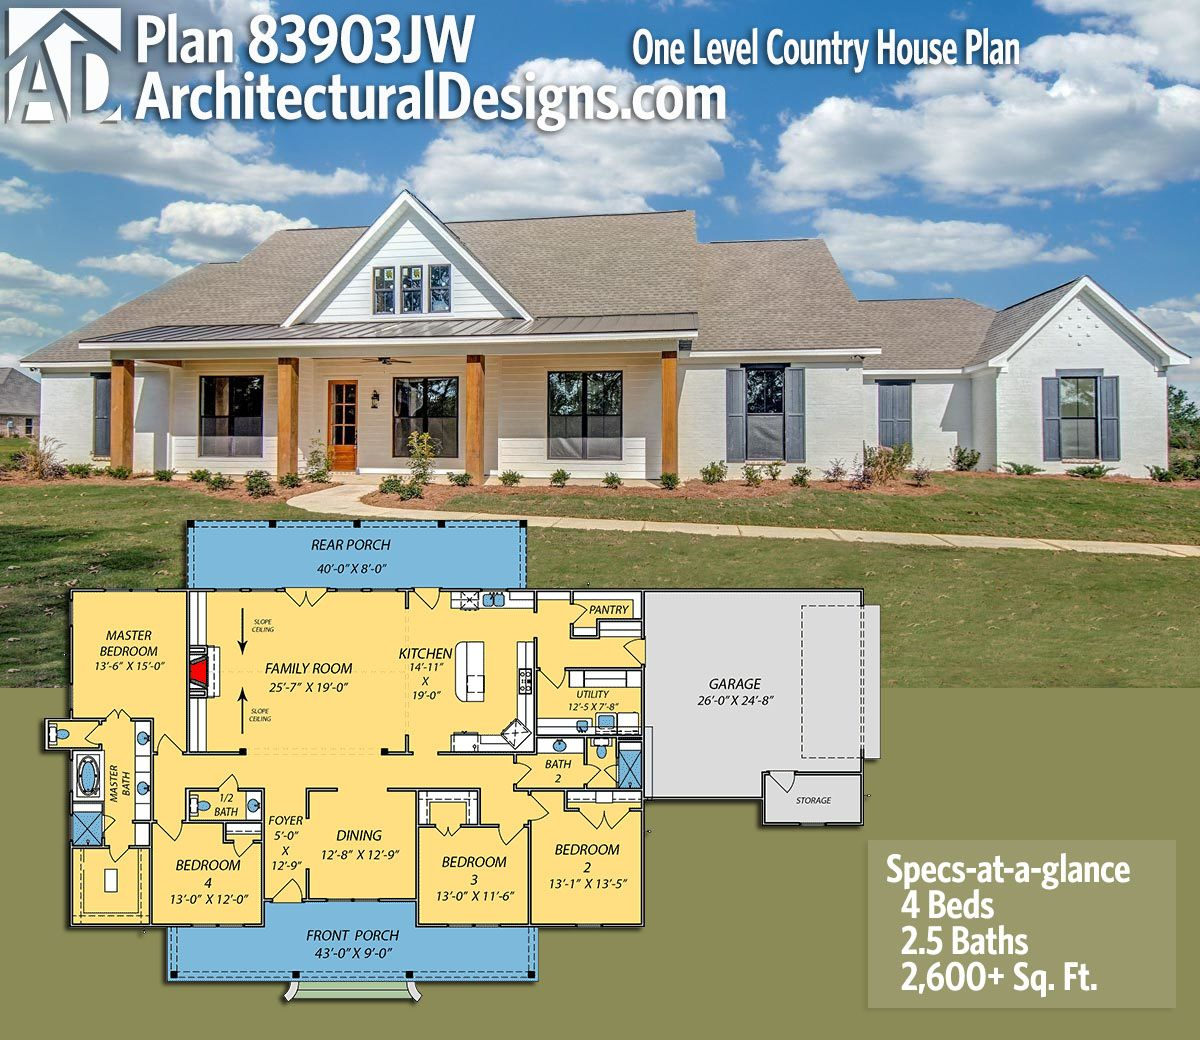 Architectural designs house plan 83903jw gives you one for Modern country floor plans